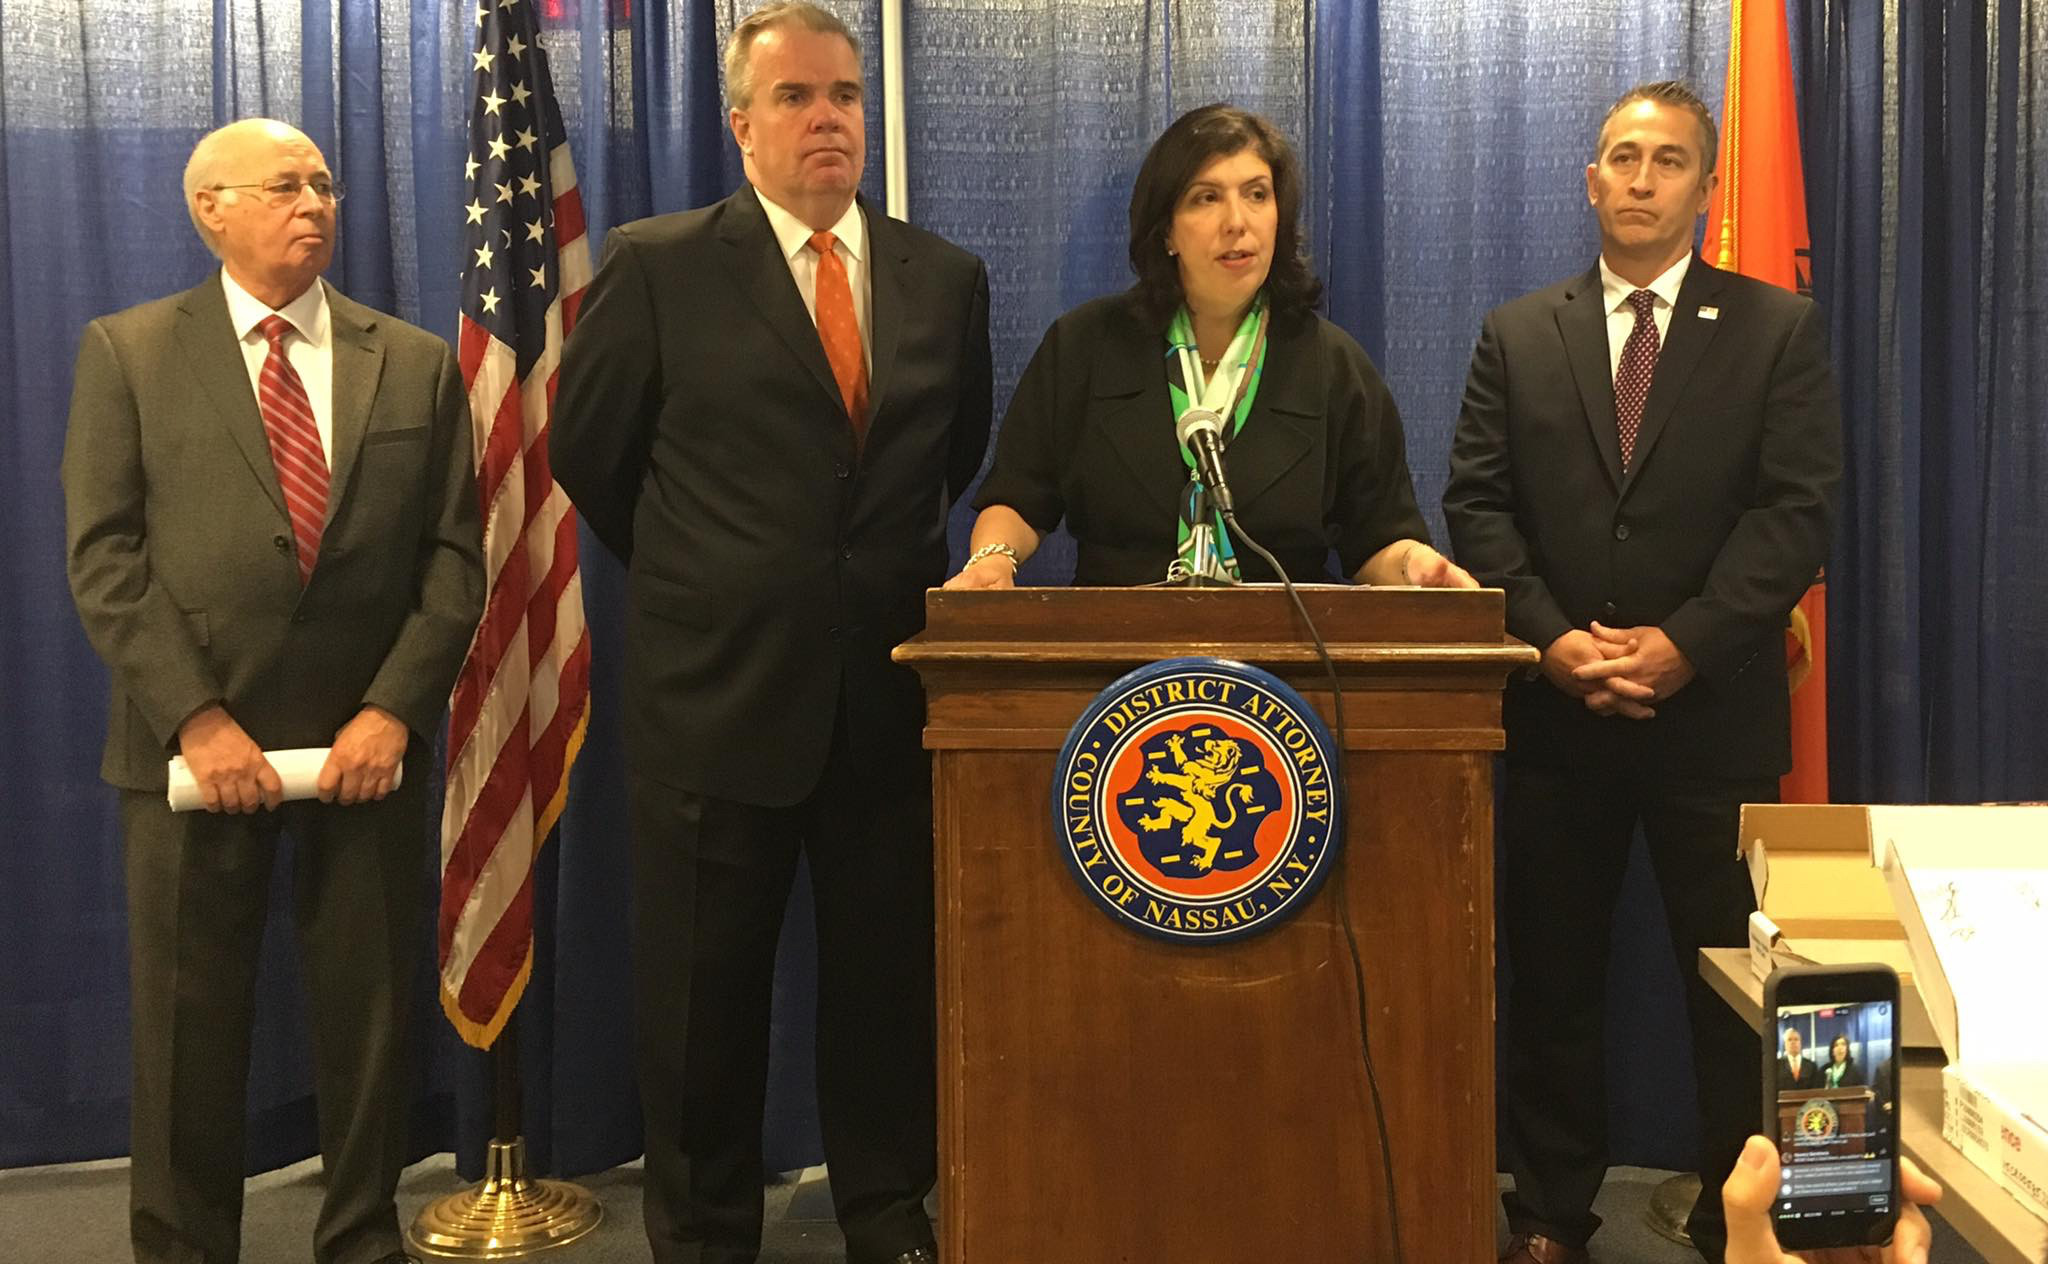 Nassau County District Attorney Madeline Singas announced the indictments of 41 alleged members of the MS-13 gang on June 15. With her are, extreme left, Edward Friedenthal, chief of Singas' Special Operations, Narcotics and Gang unit; Nassau County Police Commissioner Thomas Krumpter and Assistant Special Agent in Charge of Homeland Security Investigations, Jason Molina.